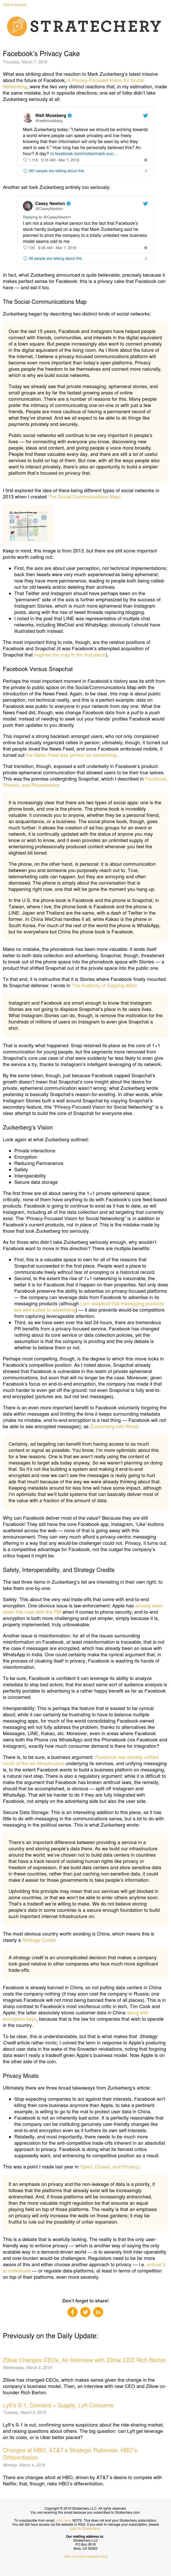 Facebook's Privacy Cake (Stratechery Weekly Article 3-7-2019)